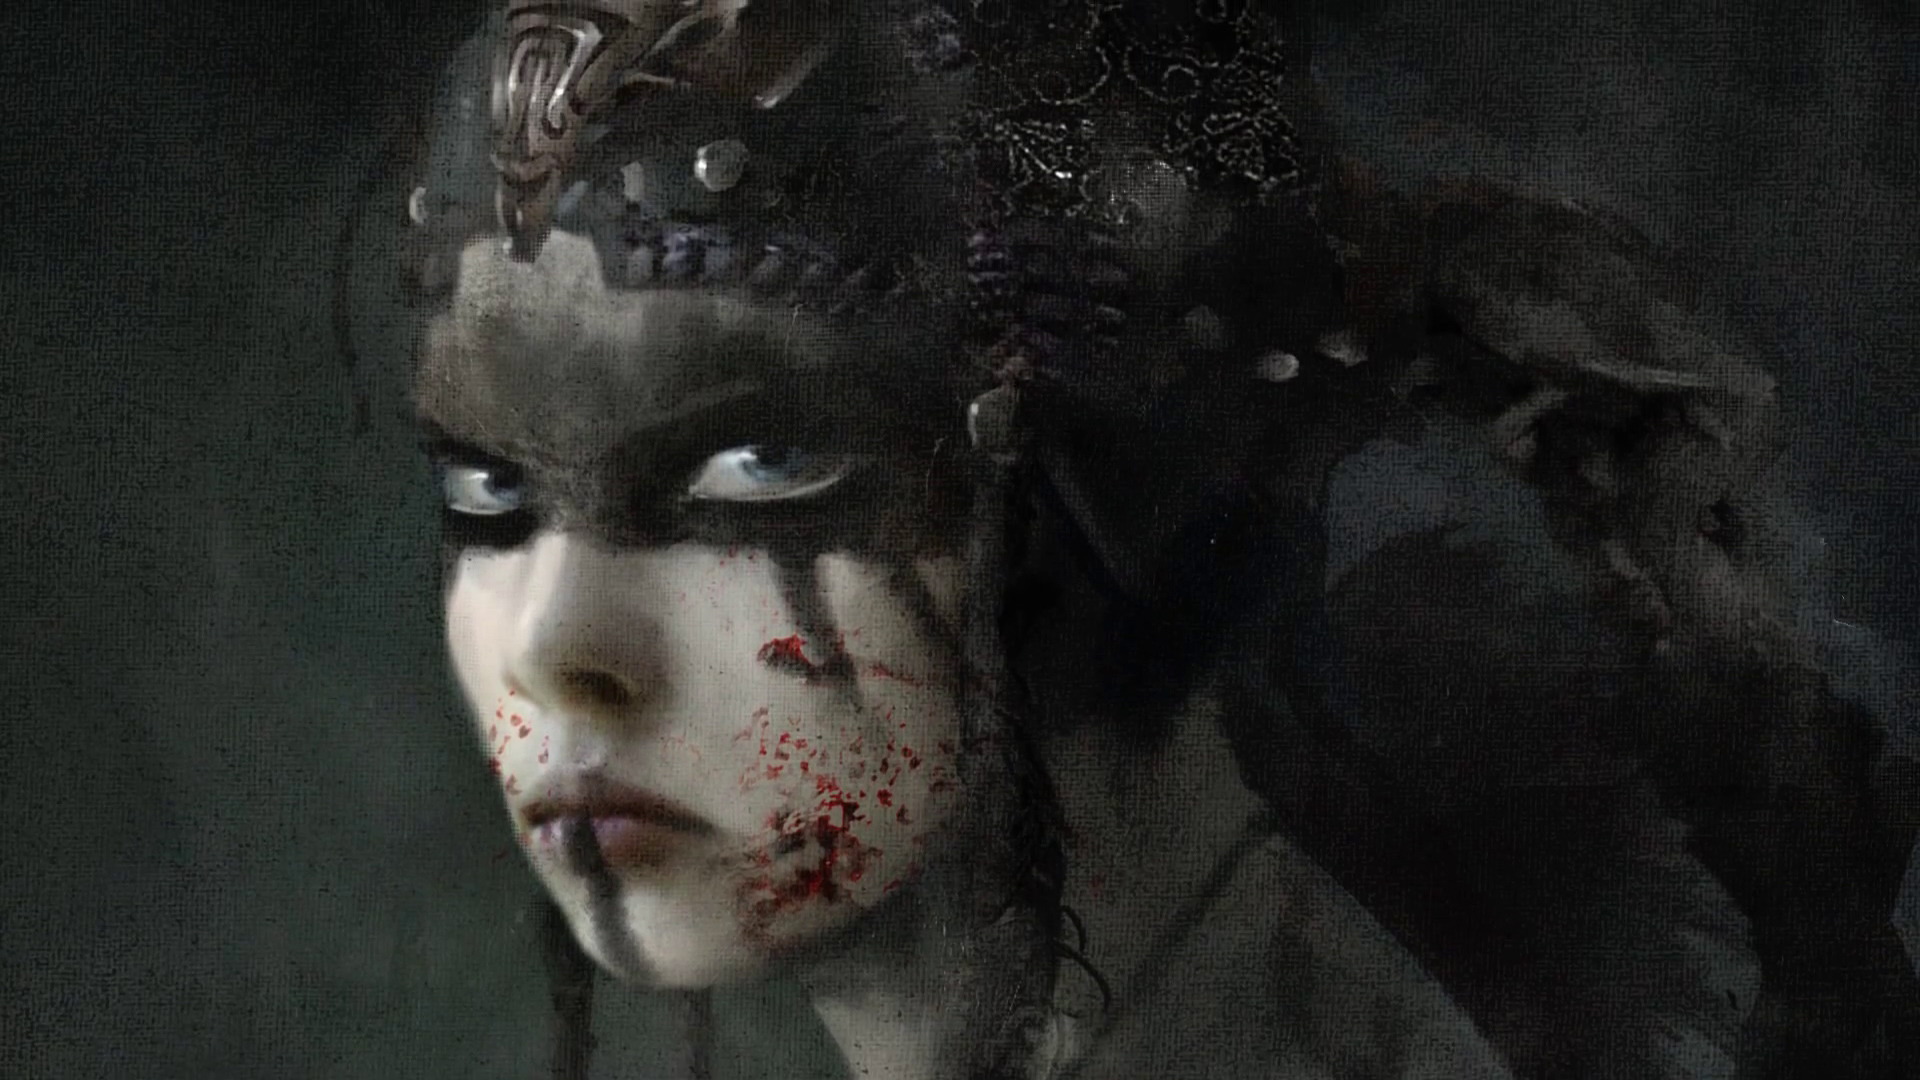 Girl Face Wallpaper For Mobile Hellblade First Gameplay Trailer For The Pc Ps4 Unreal